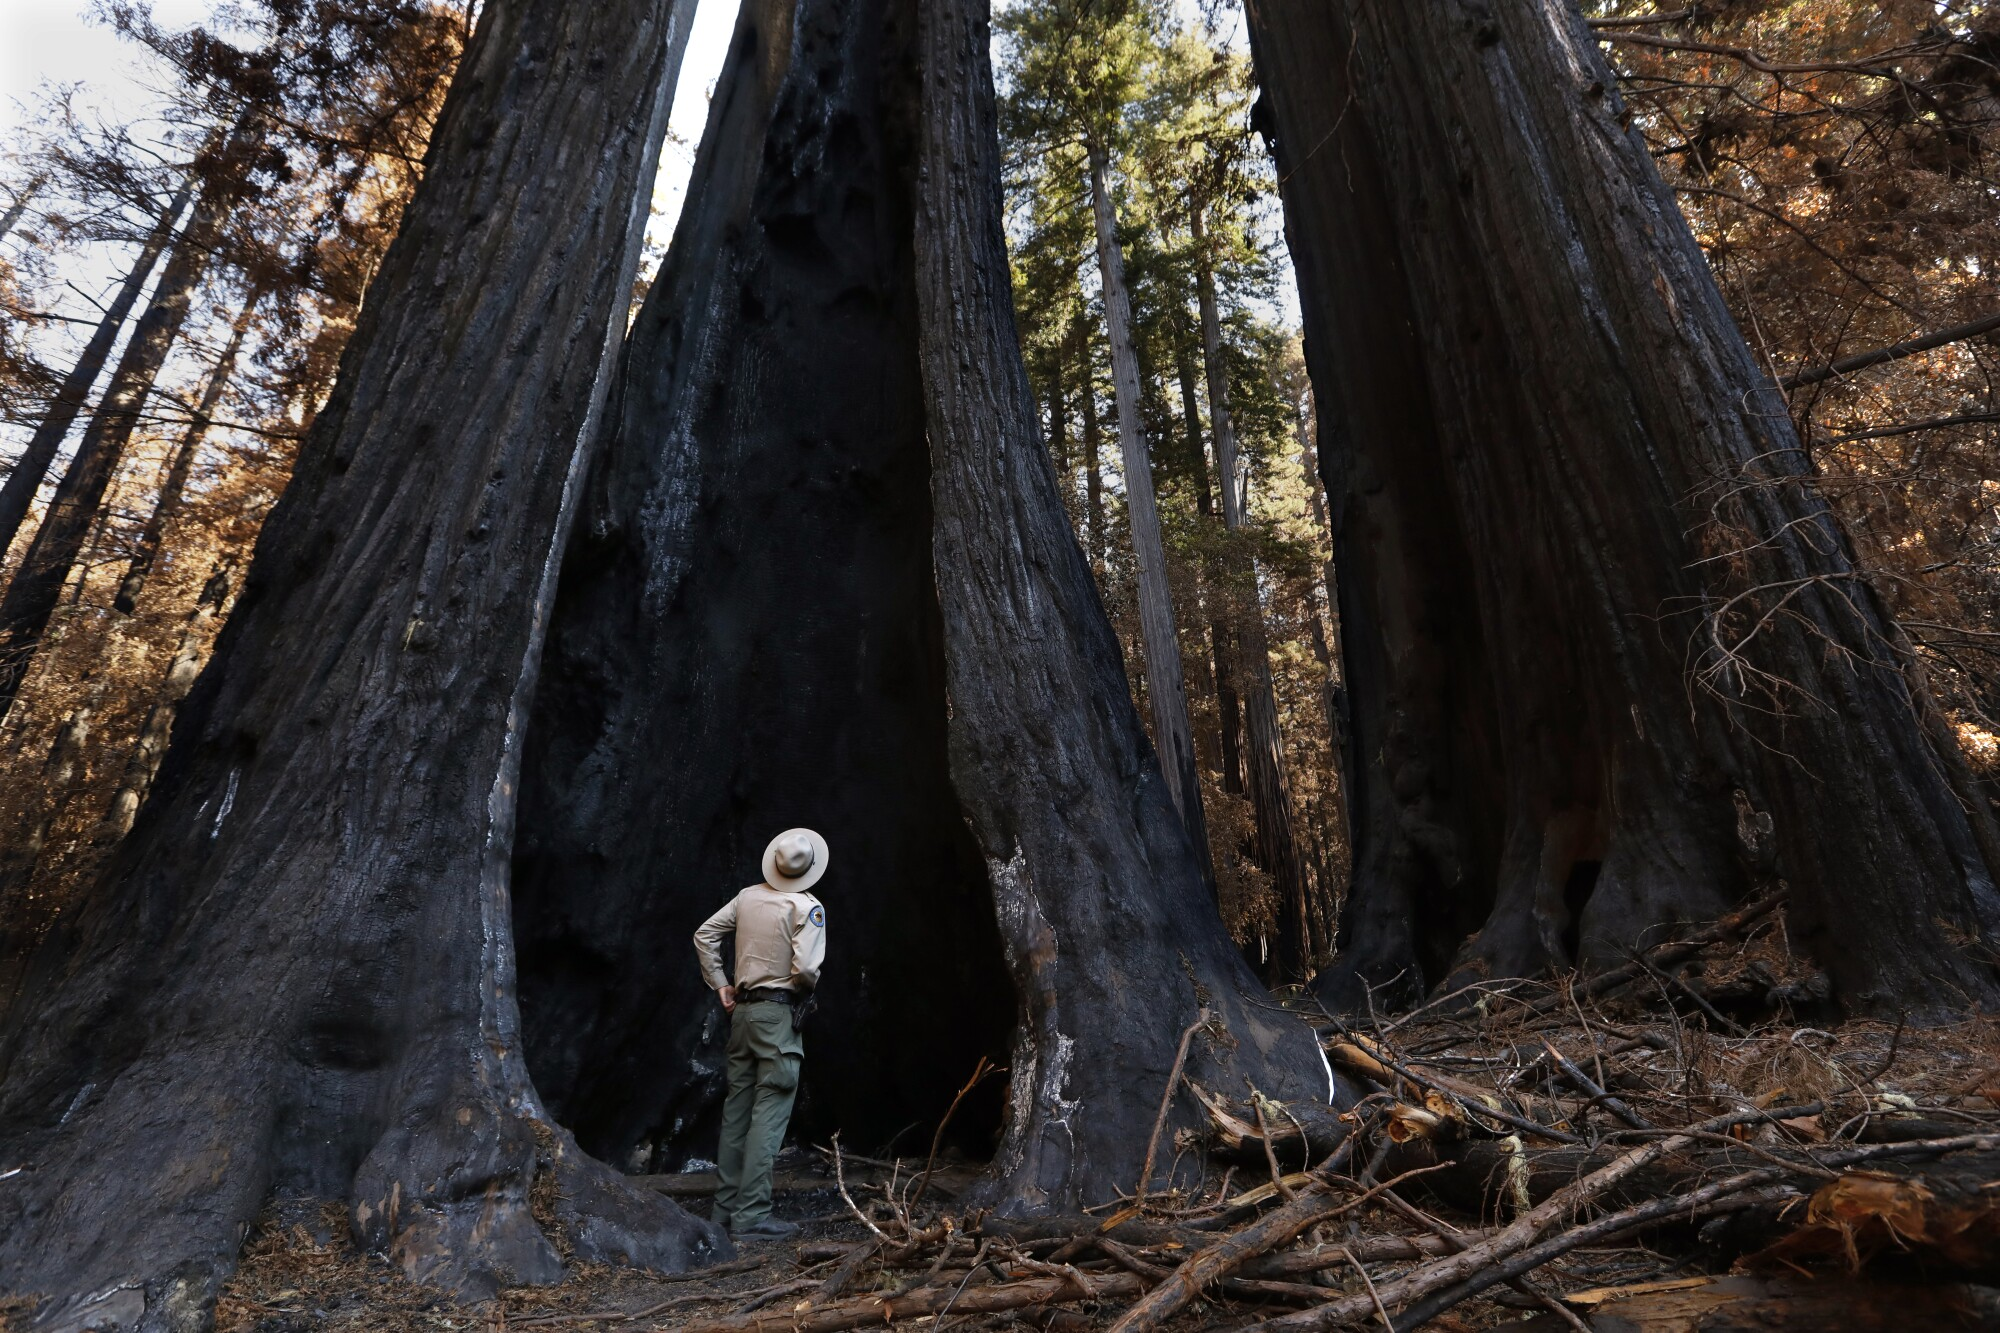 A state parks ranger stands alongside, and is dwarfed by, a charred redwood tree.